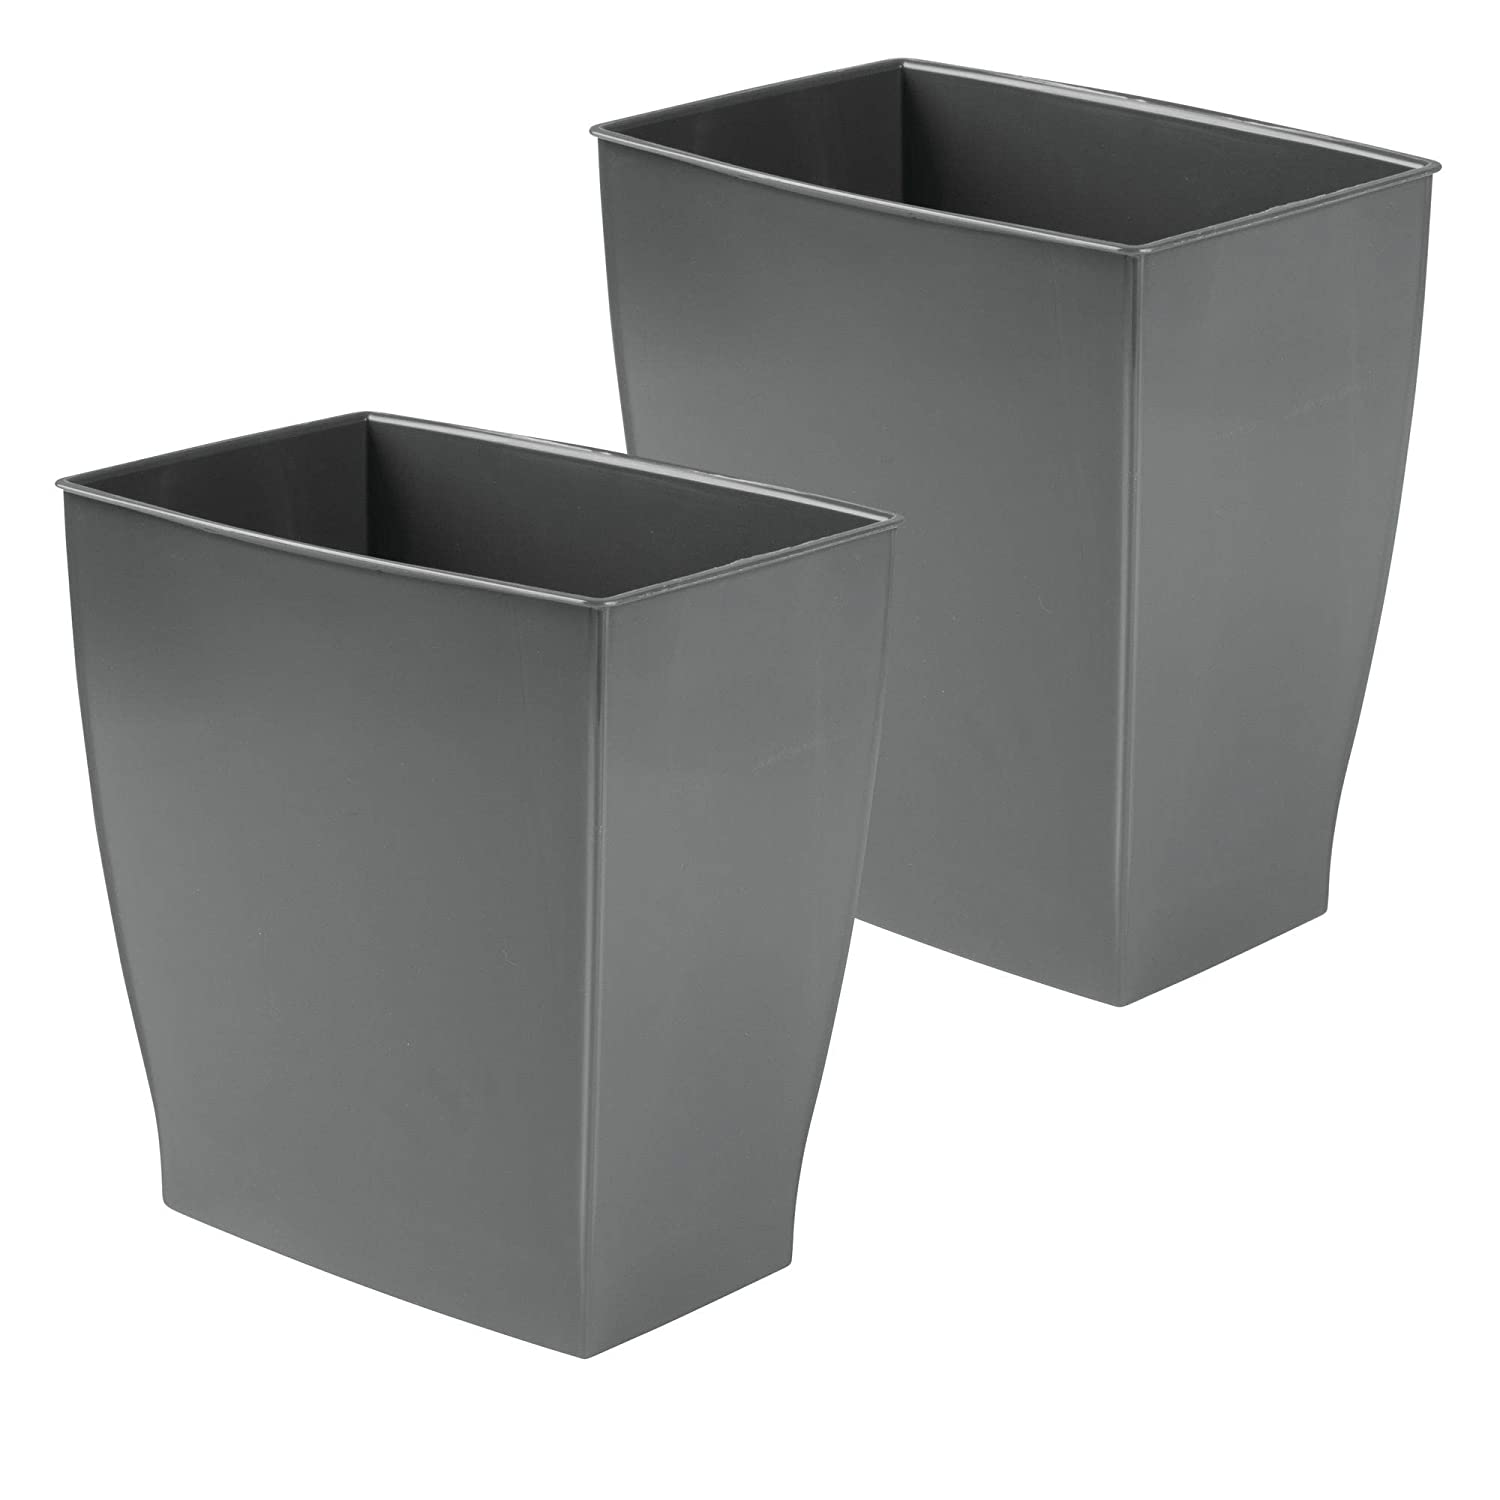 mDesign Rectangular Trash Can Wastebasket, Small Garbage Container Bin for Bathrooms, Powder Rooms, Kitchens, Home Offices - Shatter-Resistant Plastic, 2 Pack - Slate Gray